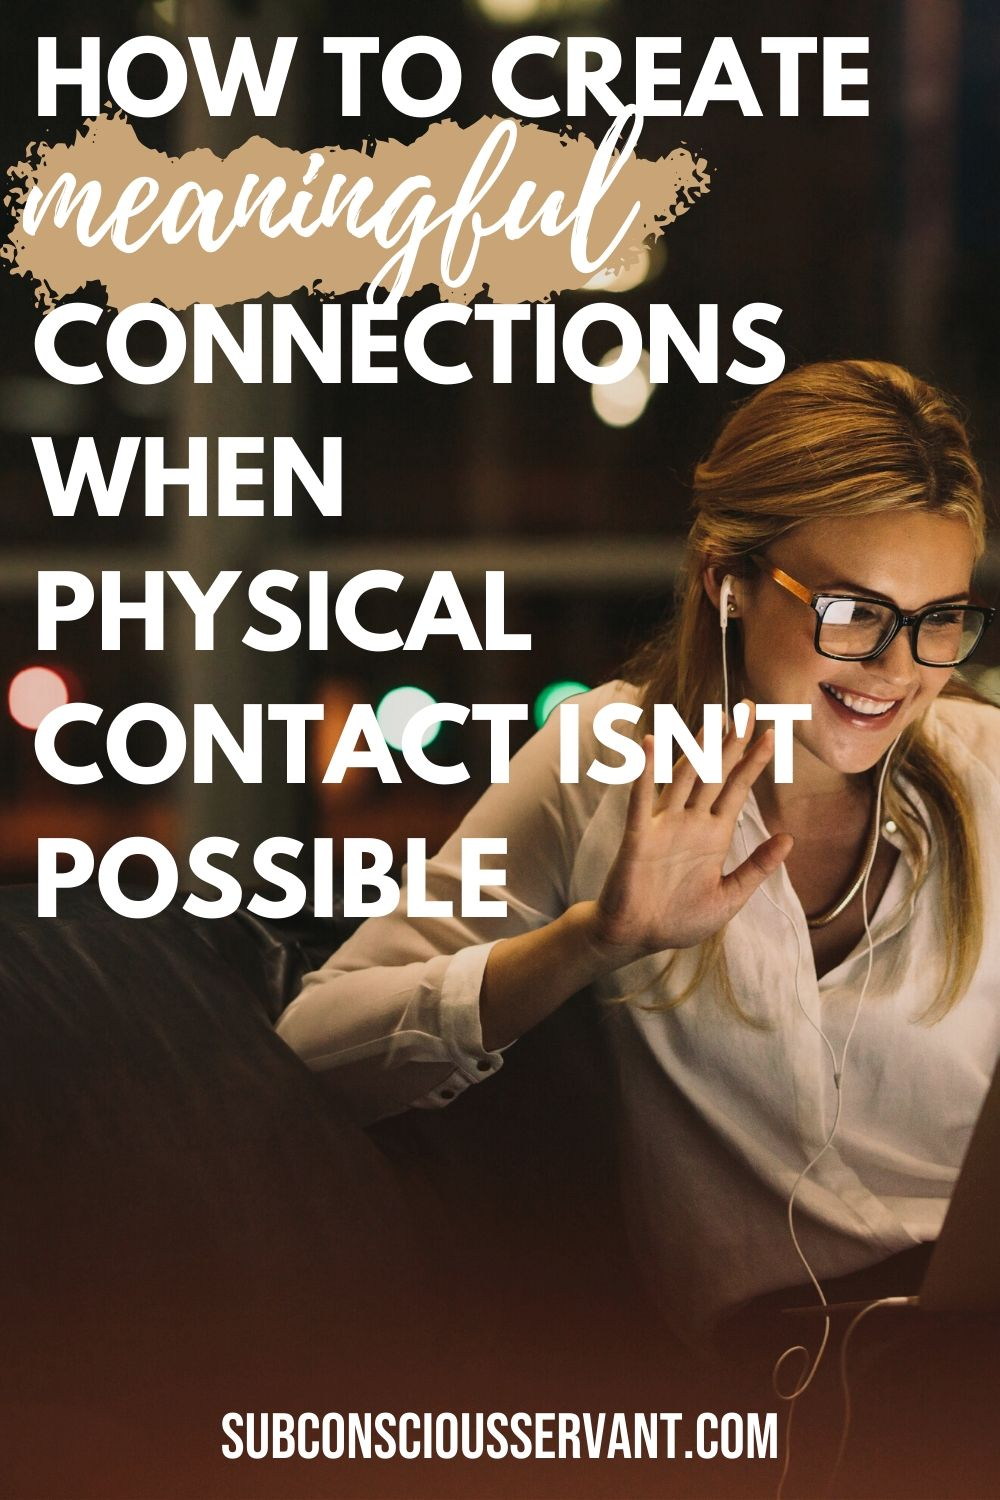 How To Have Meaningful Connections When Physical Contact Isn't Possible